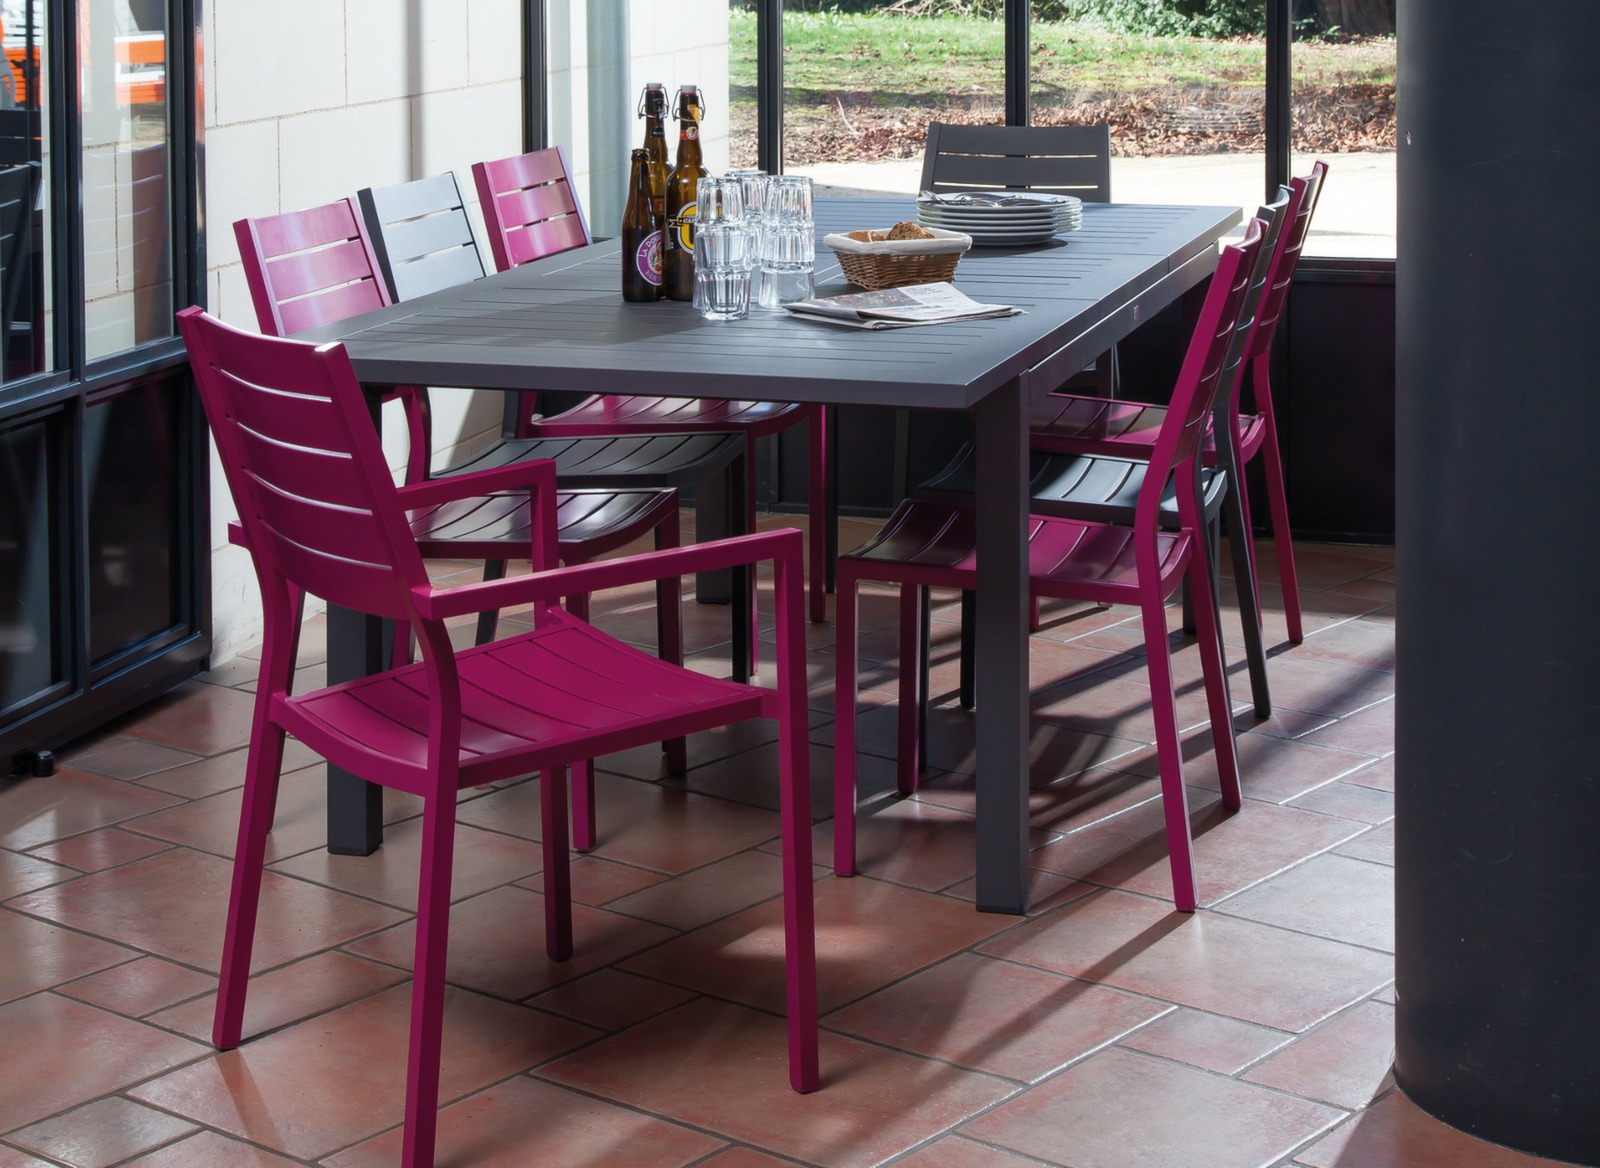 Salon jardin table turin 4 chaises 2 fauteuils oc o for Ambiance tables et chaises reims